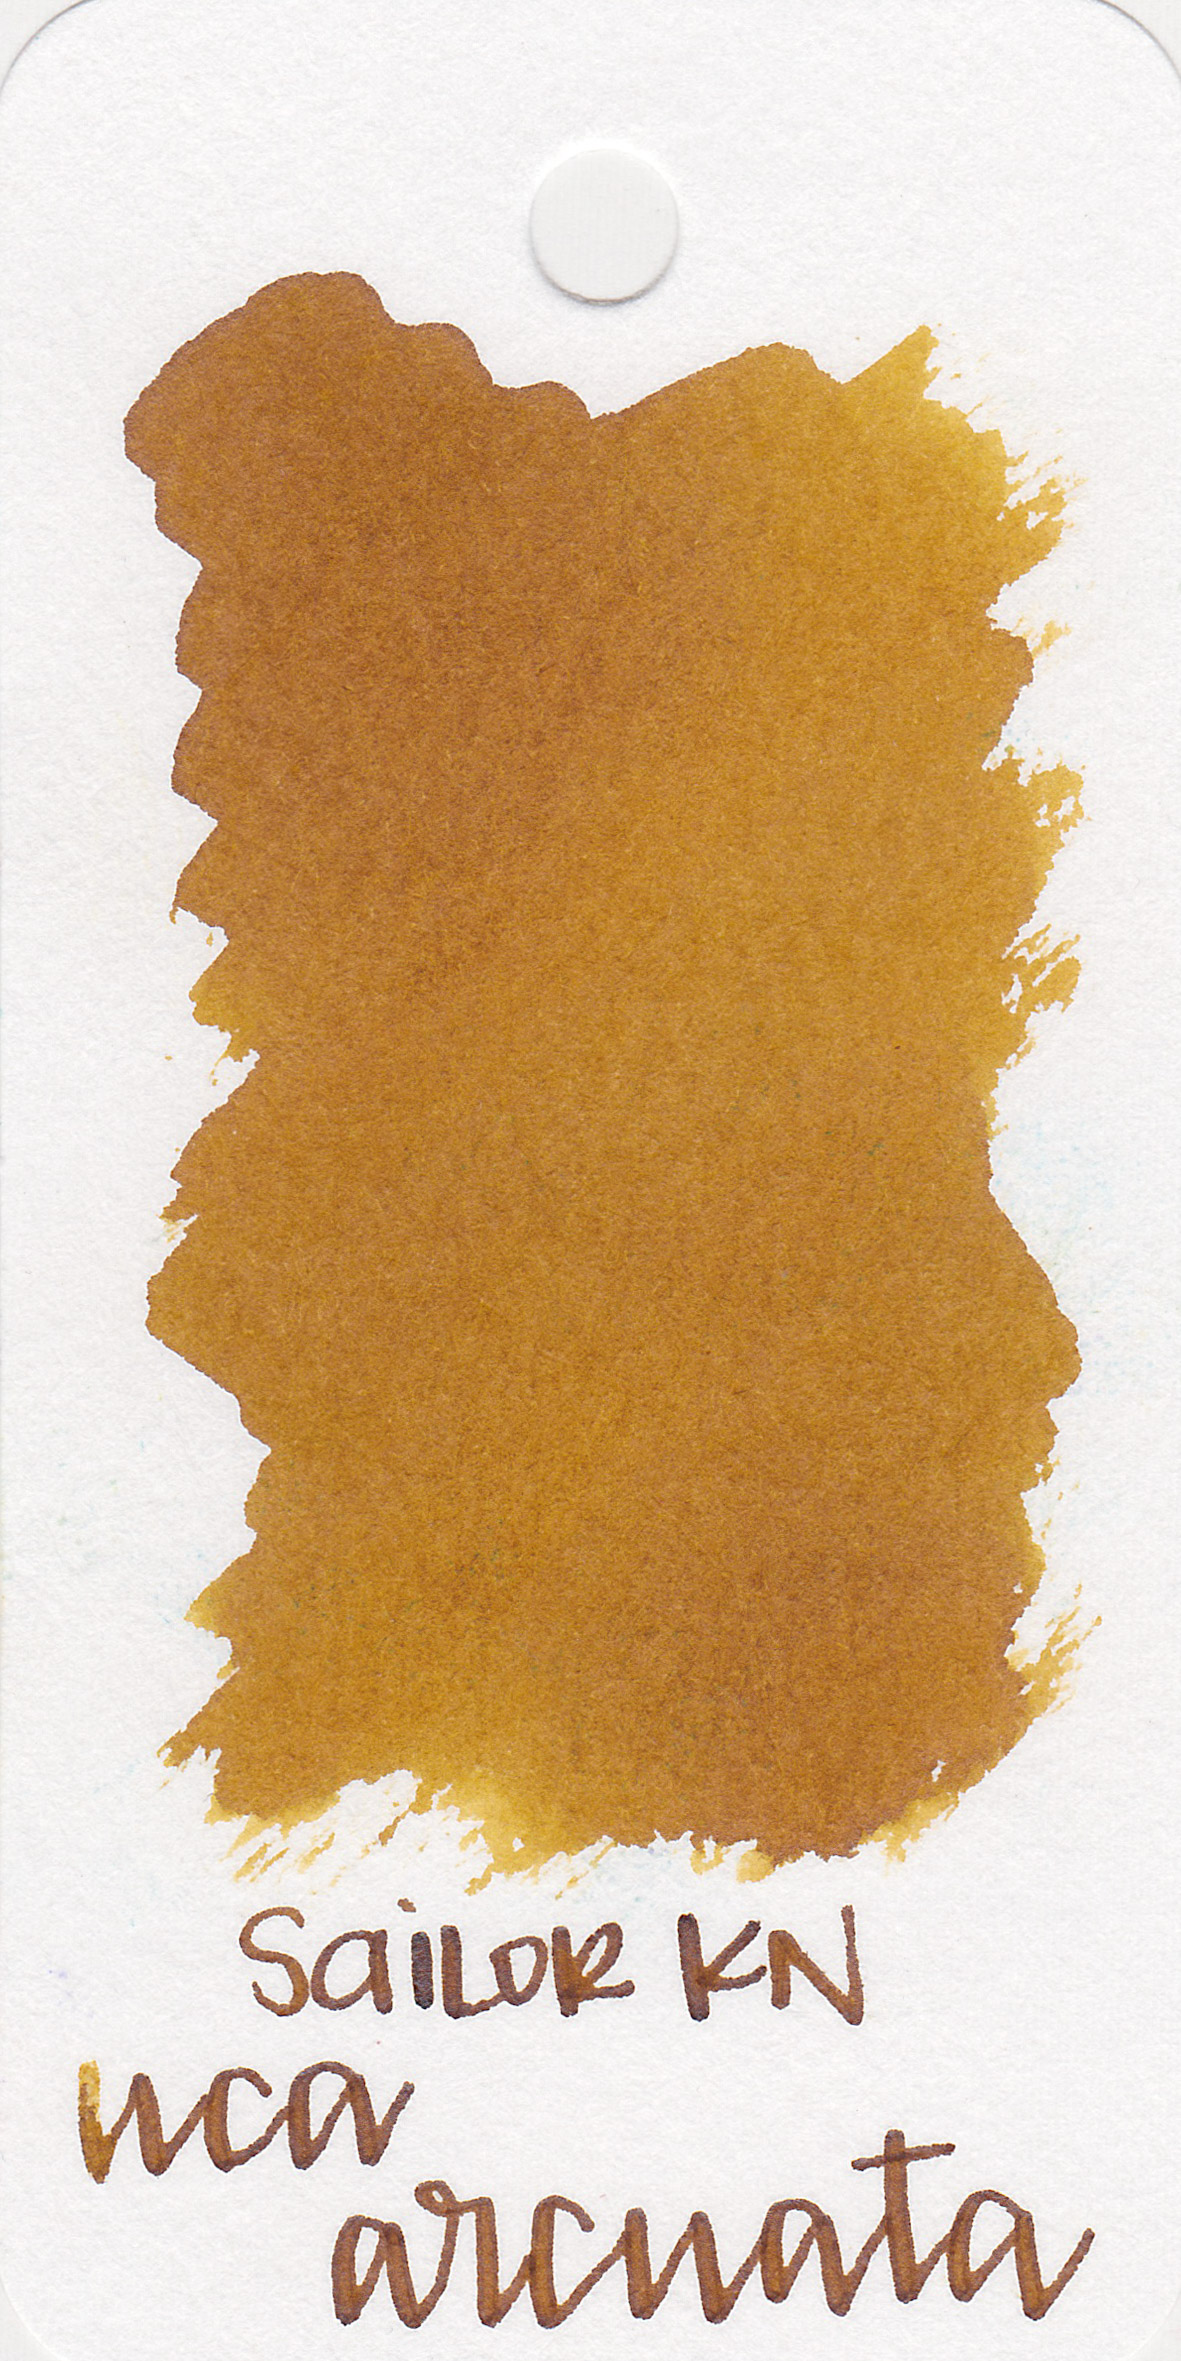 The color: - Uca Arcuata is a golden color, not quite yellow but not quite brown either.